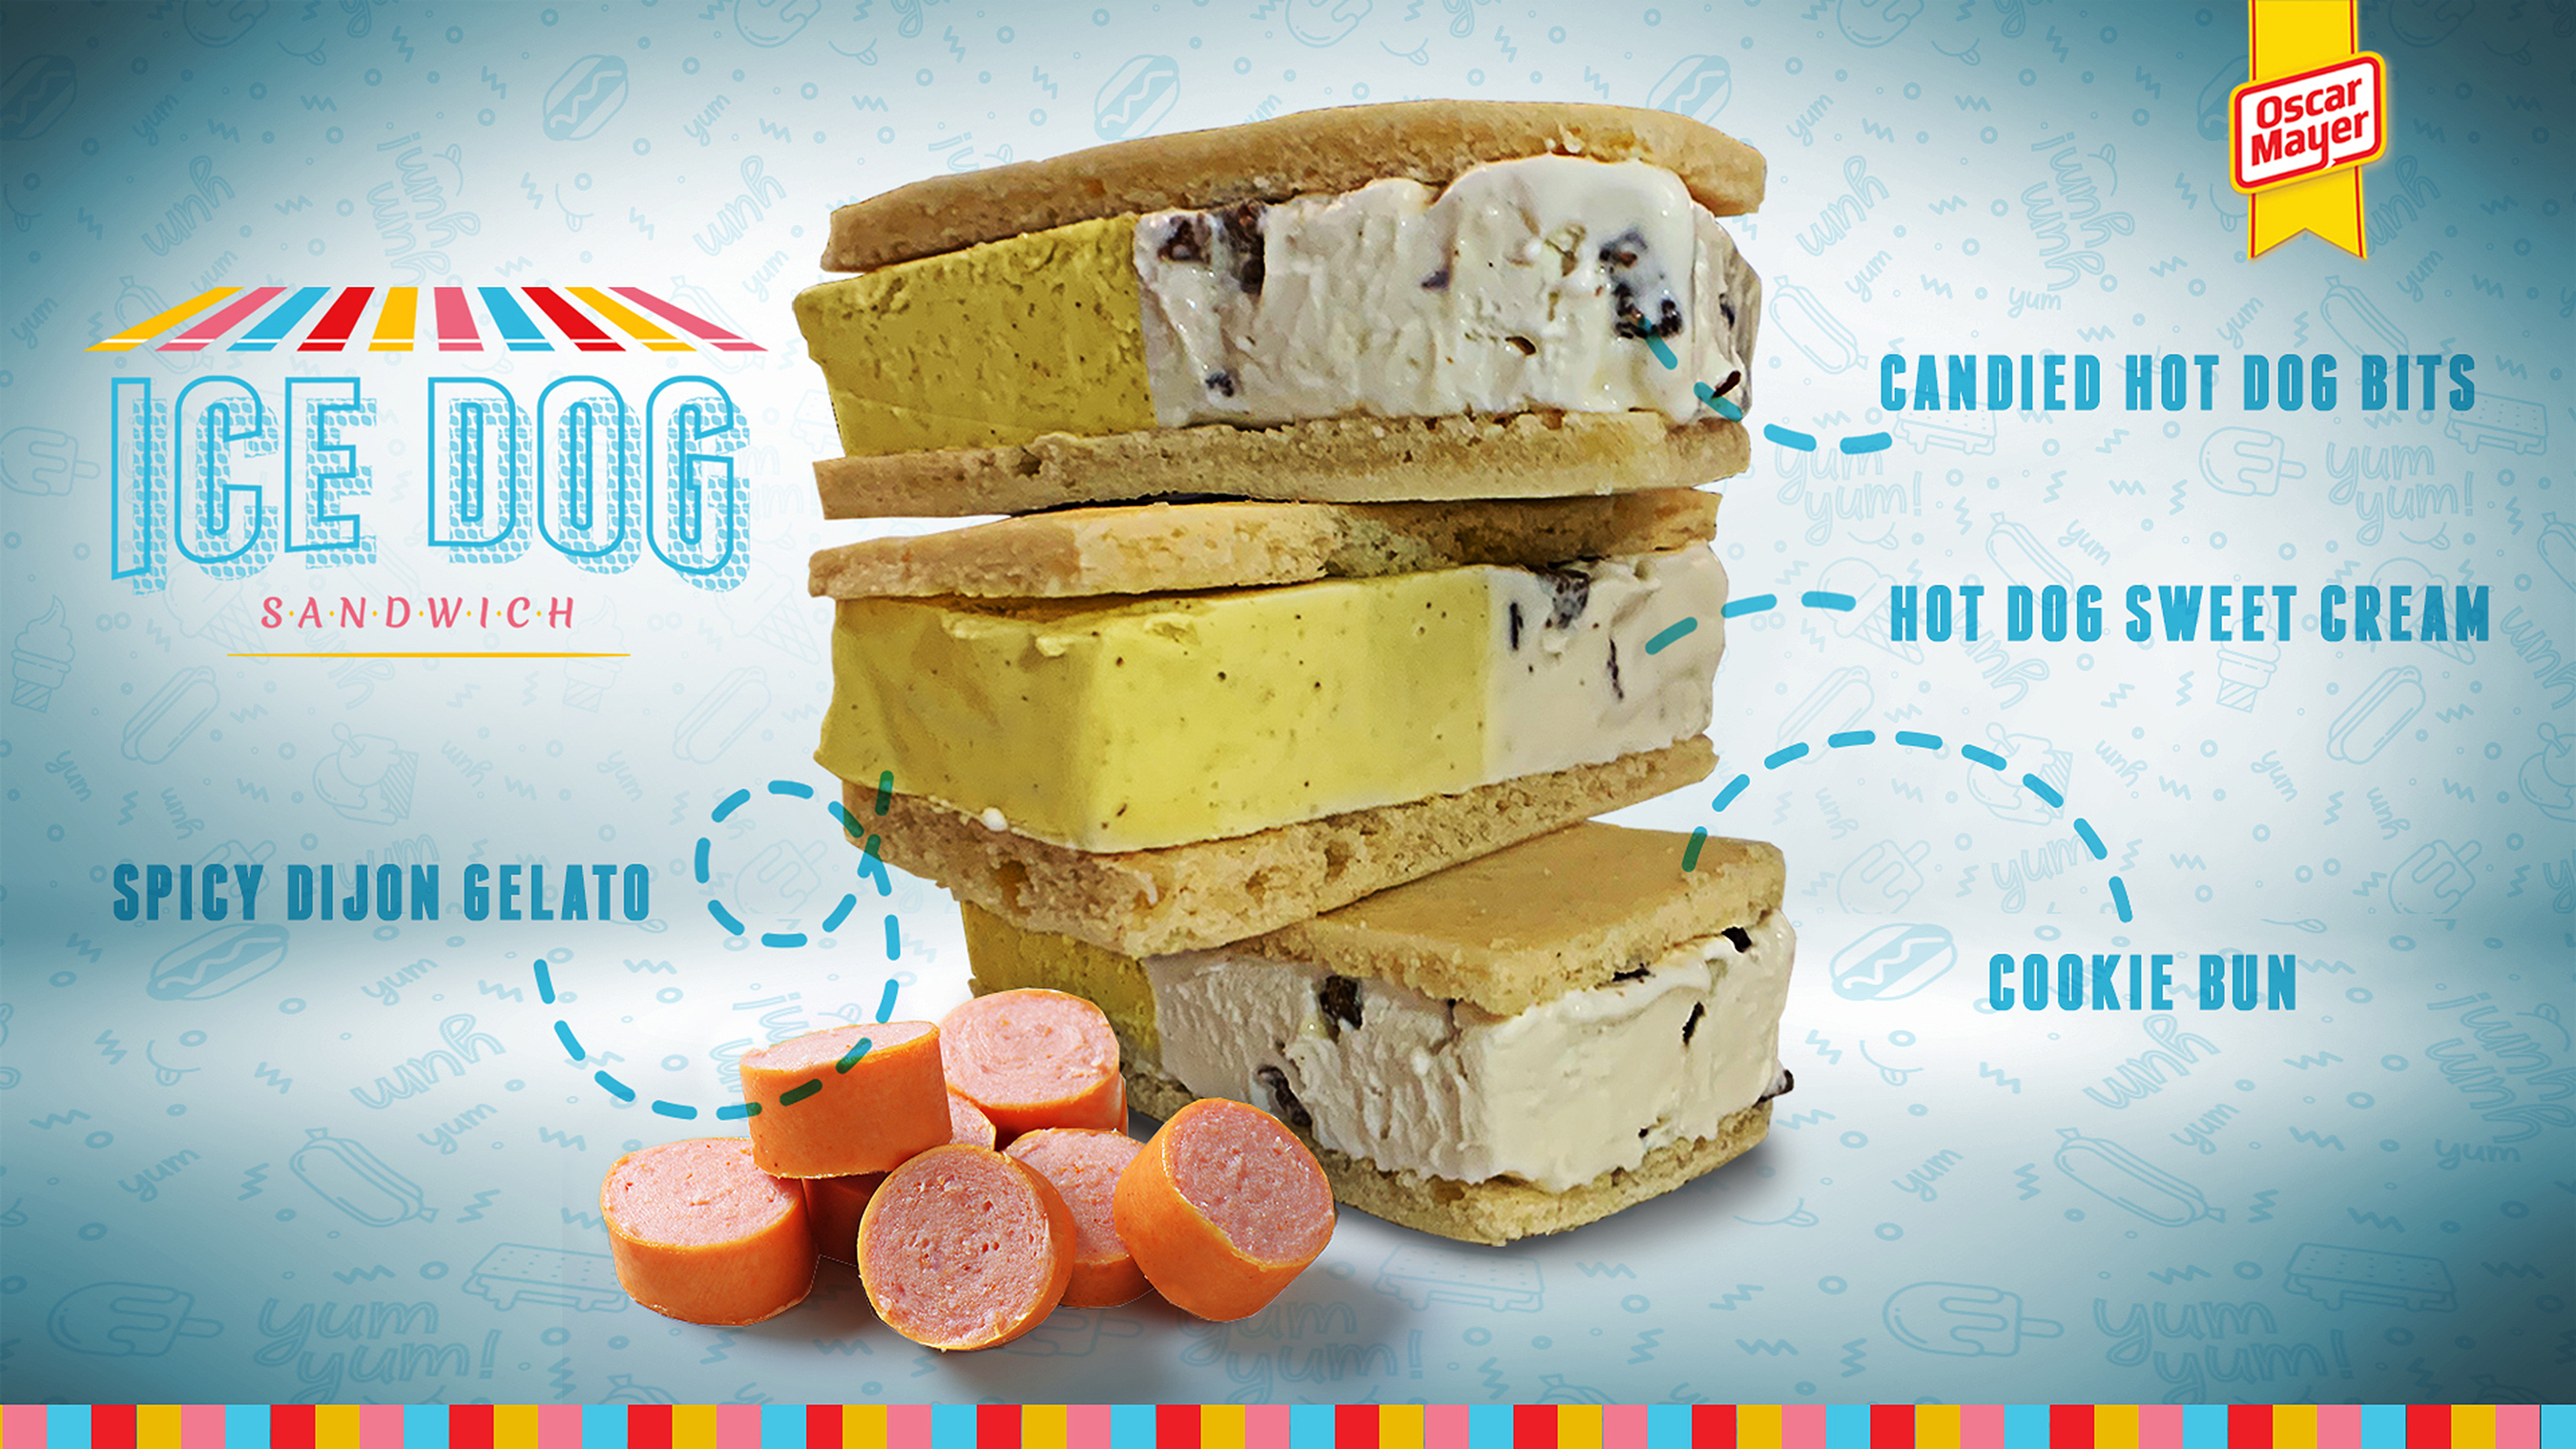 Oscar Mayer Debuts Hot Dog-Flavored Ice Cream with Actual Candied Hot Dog Pieces